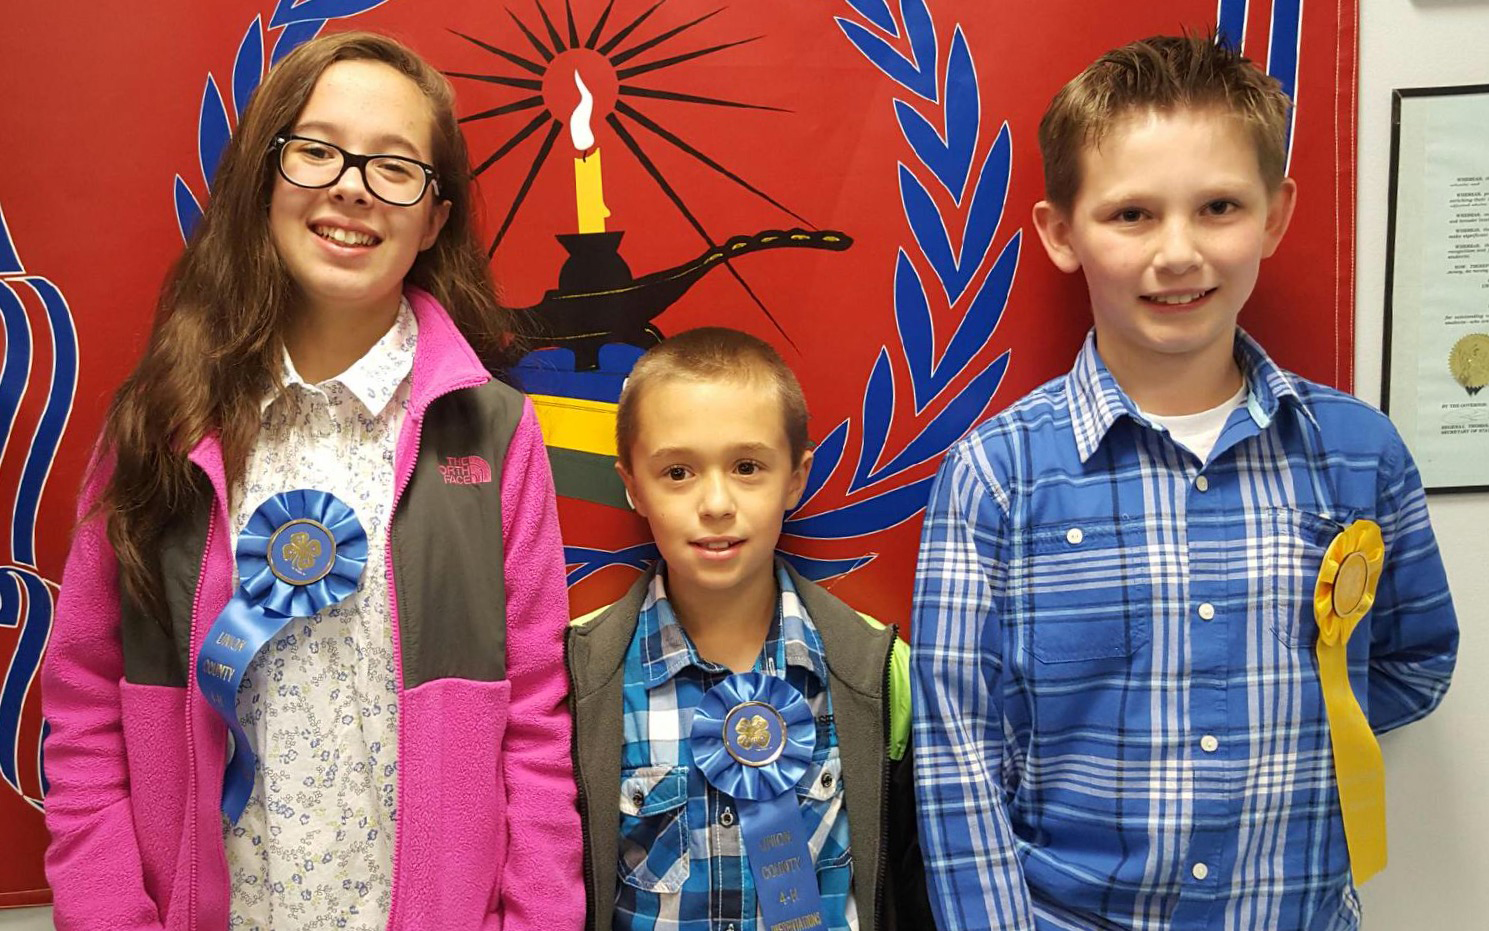 (above) Ariana Rodriguez, Diego Rodriguez, and Alex Pillar, all of of whom won awards for their presentations. Not pictured in the 4-H Club are Ashton and Ryan Armstead, Joscelin Busse, Erica Conde, and Francesca and Gianni Villani.